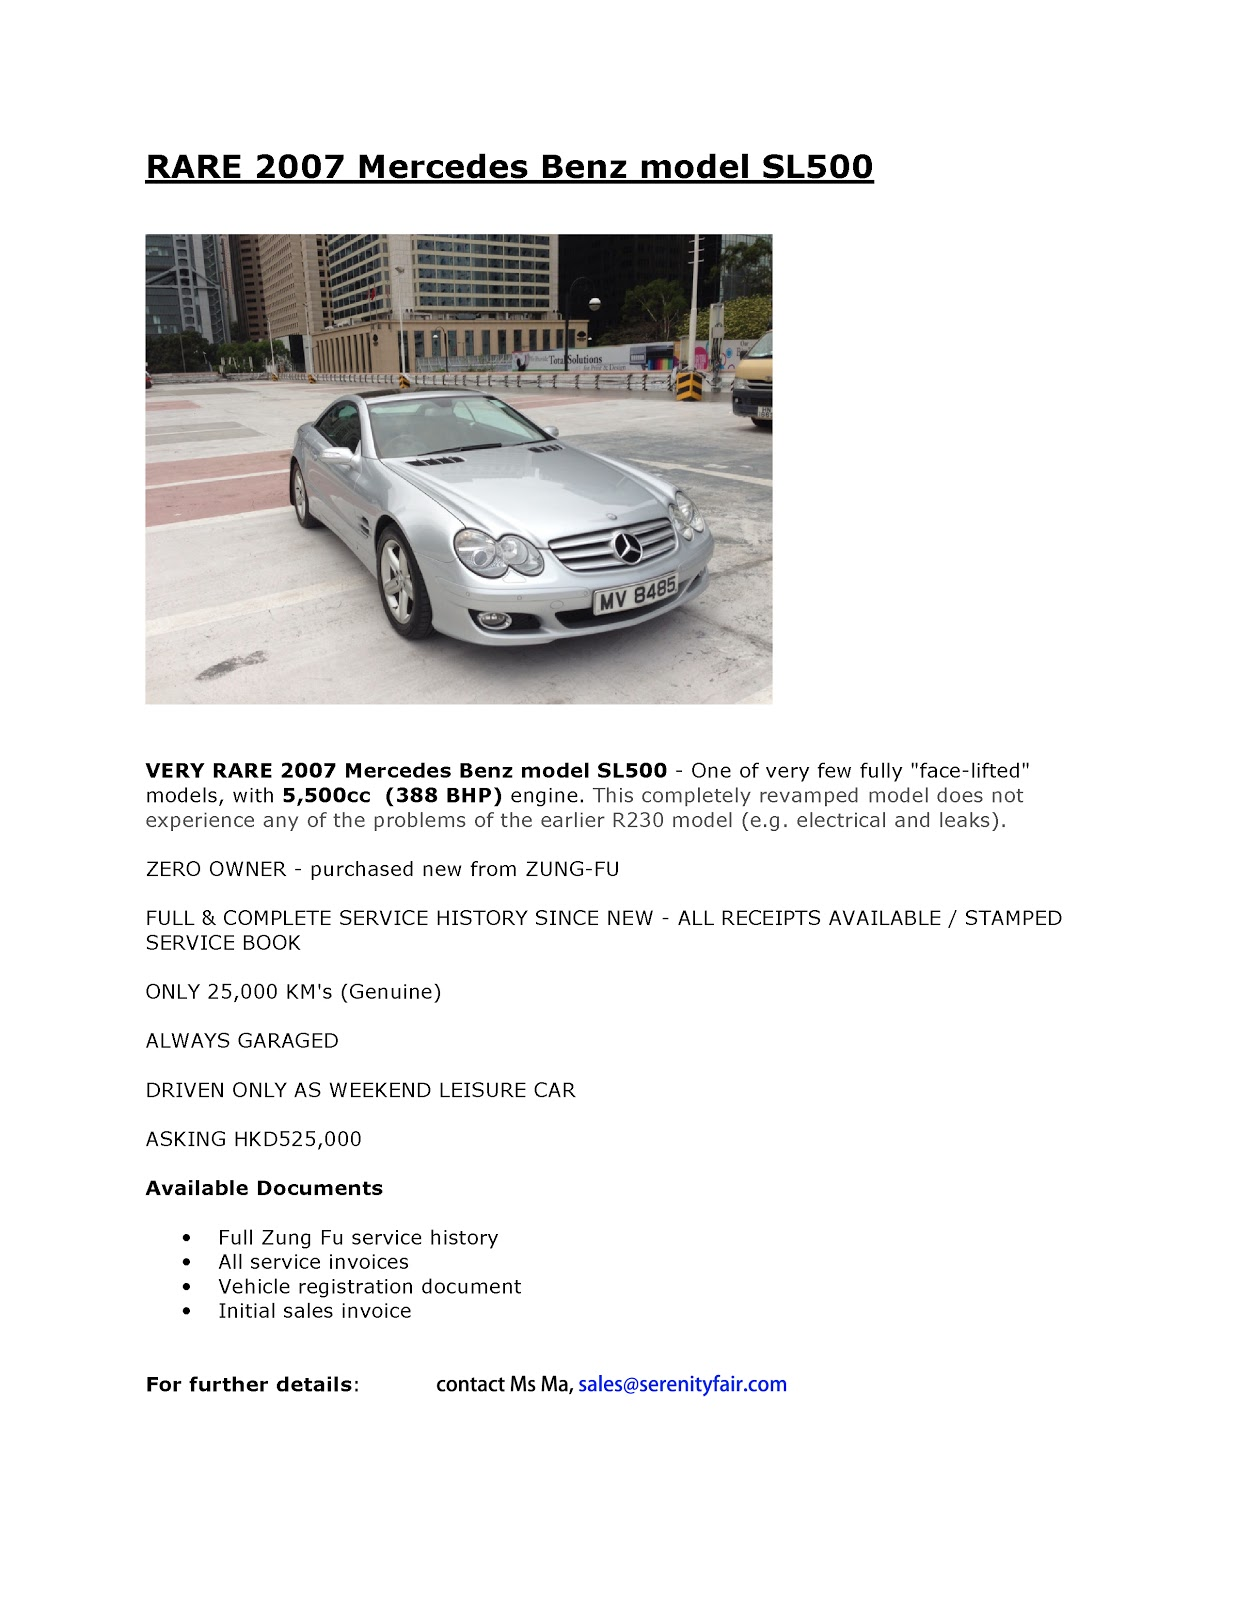 Car For Sale In Hong Kong : Mercedes Benz SL 500. Bought New From Dealer,  2007  Car For Sale Flyer